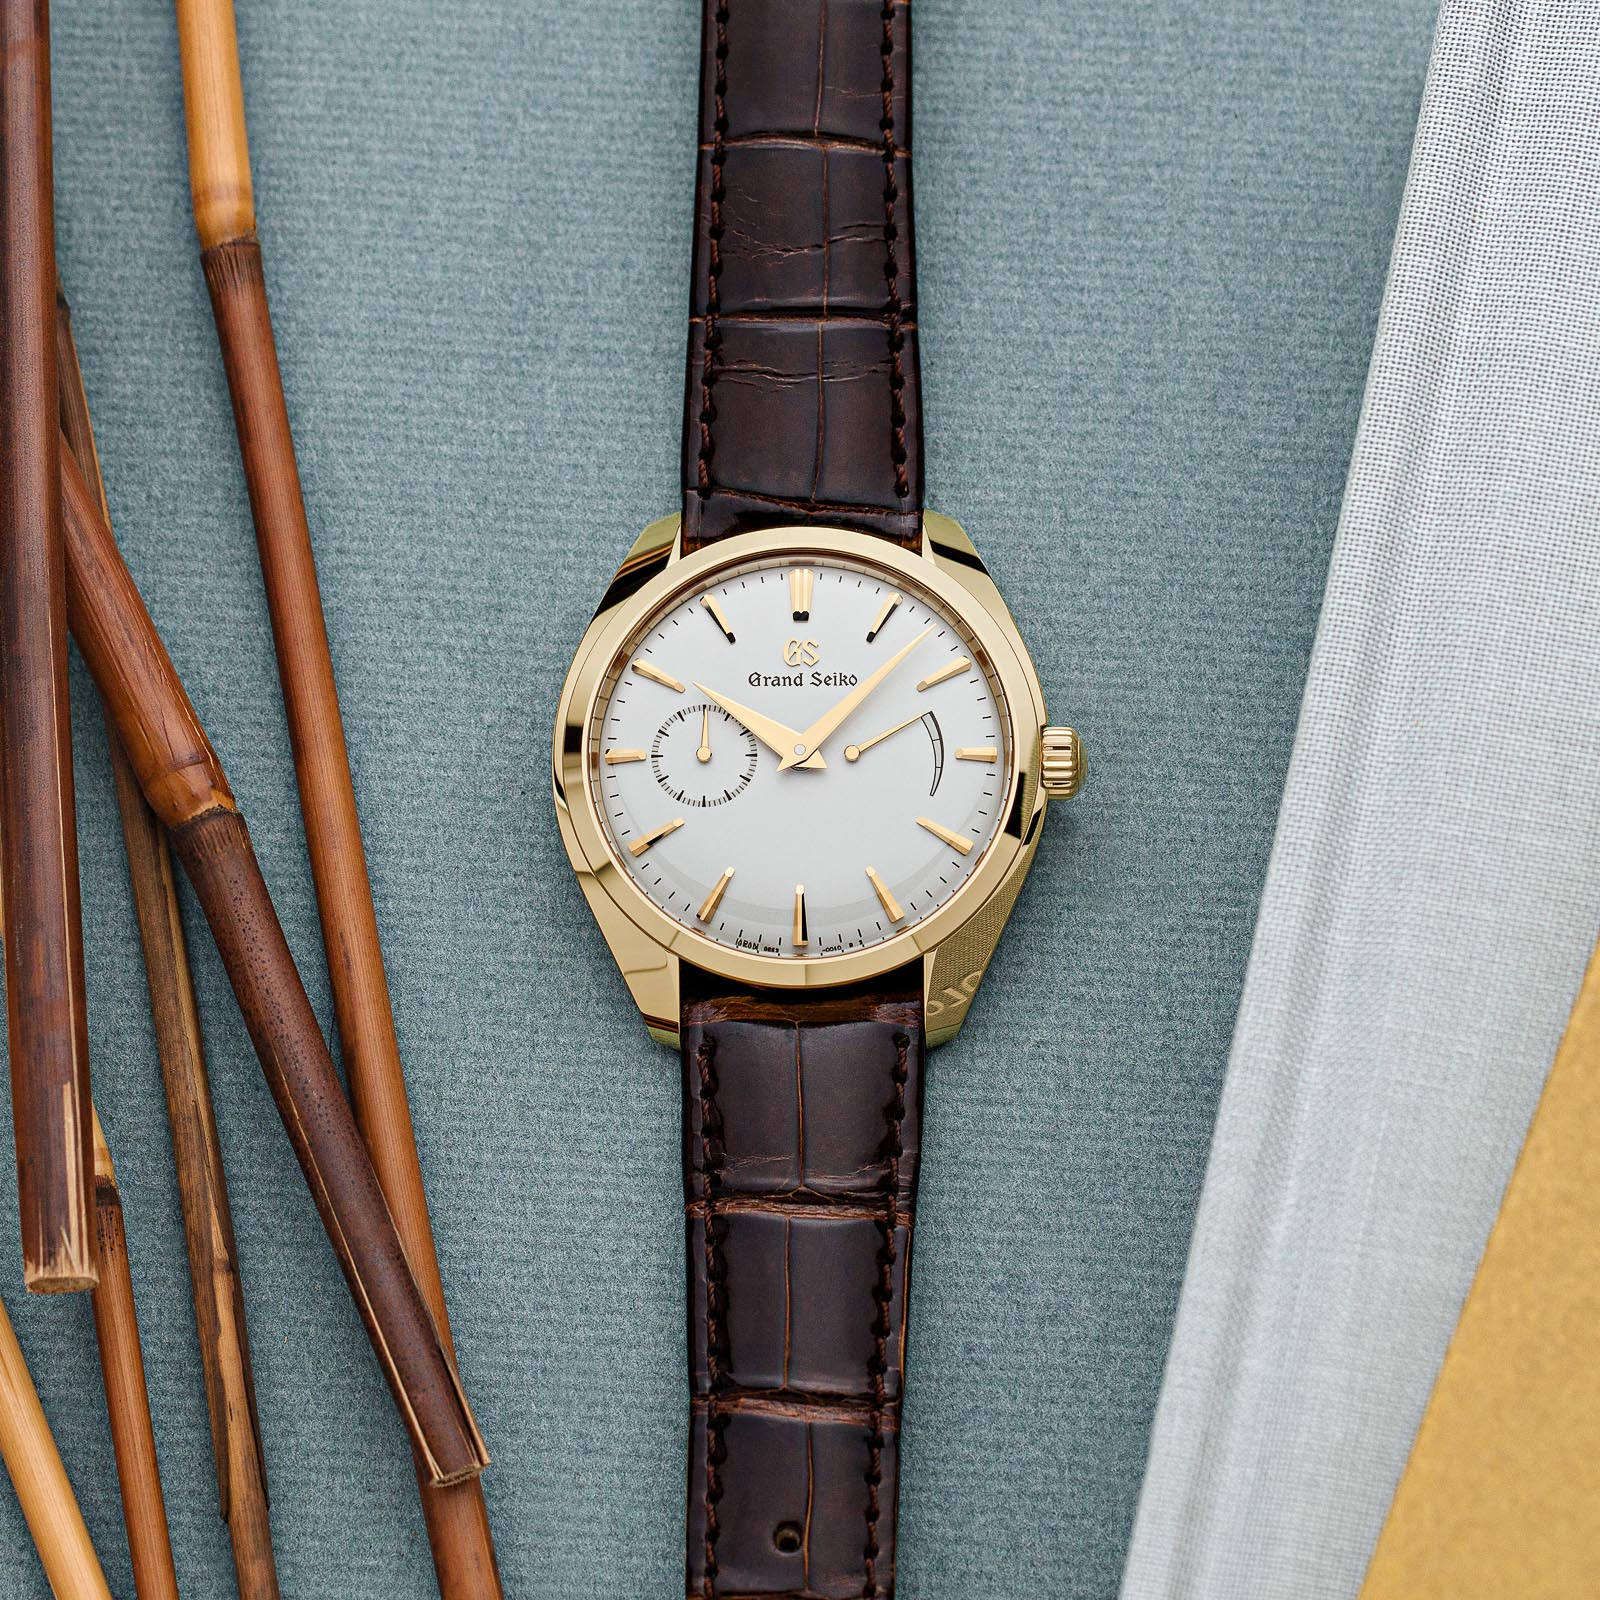 A slim, yellow gold Grand Seiko timepiece with a light dial and brown strap.